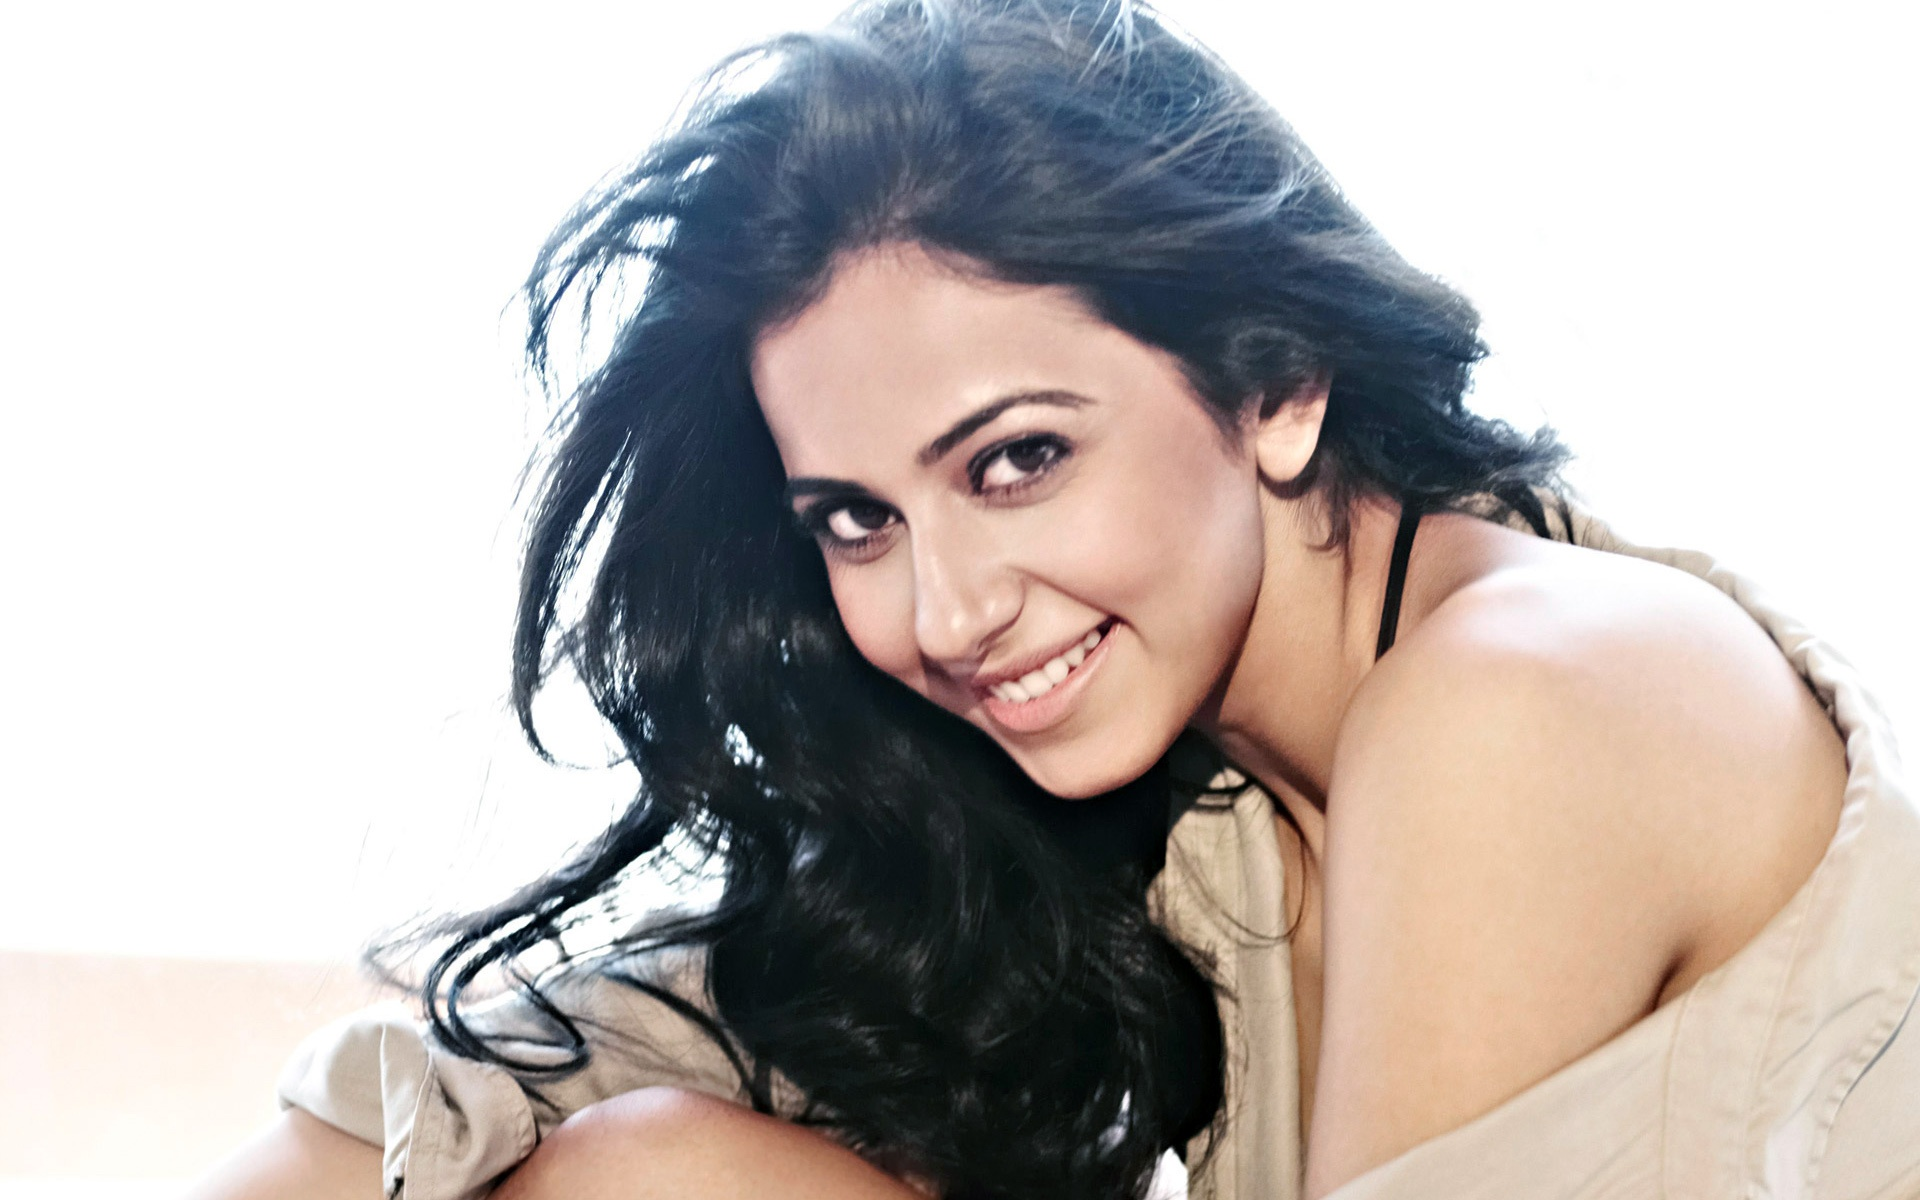 rakul preet singh full hd wallpaper and background image | 1920x1200